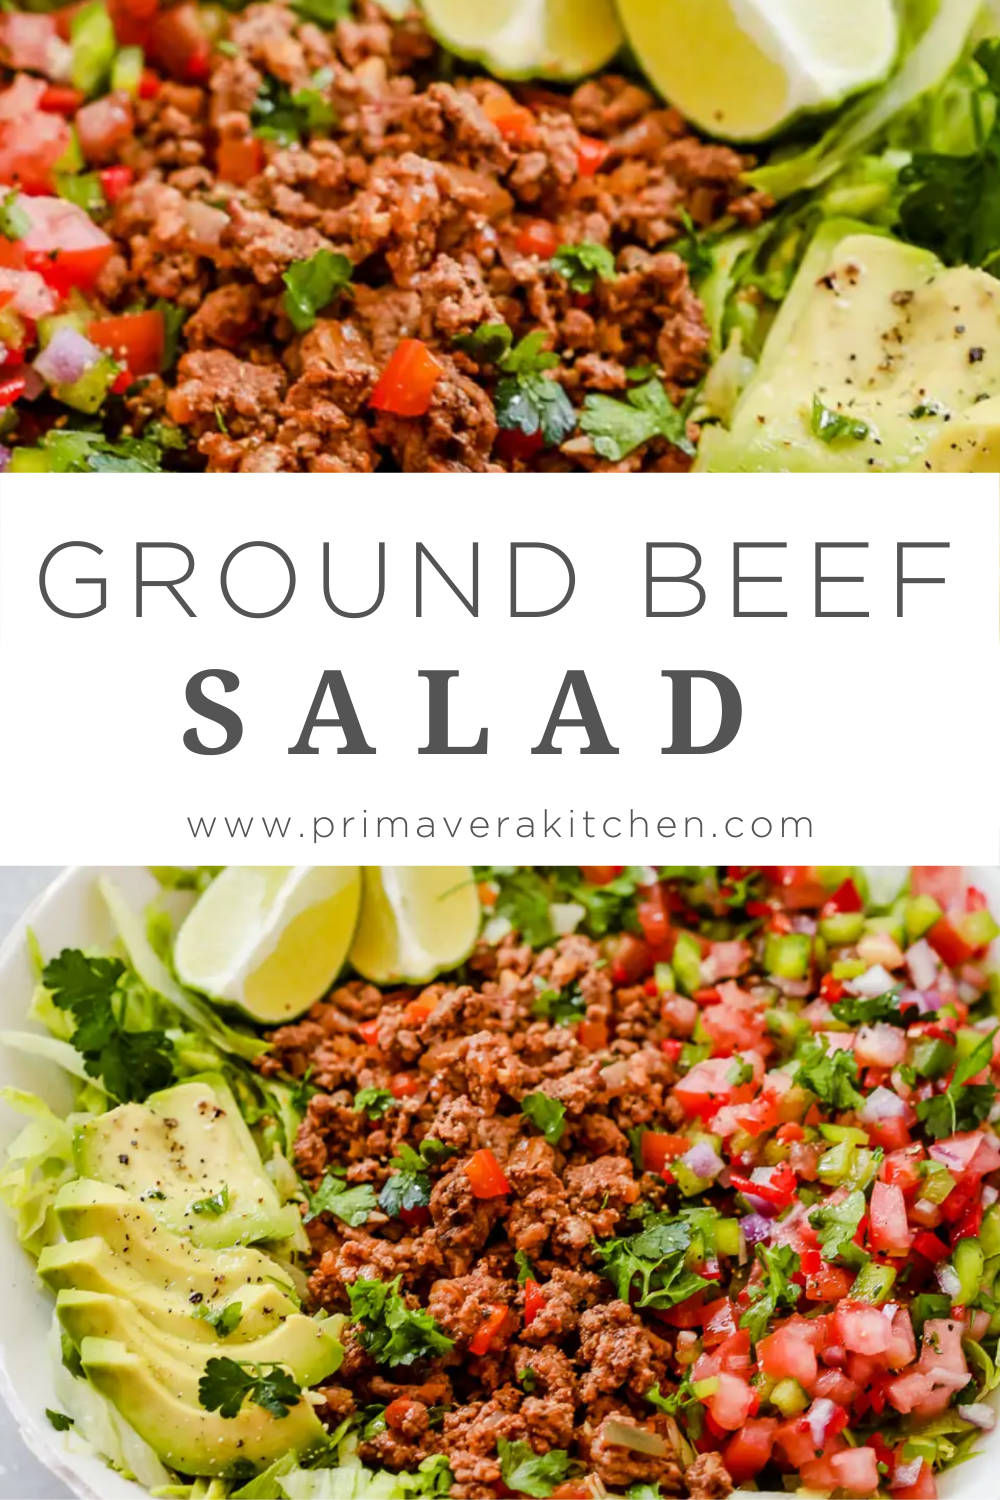 Ground Beef Taco Salad Low Carb Whole30 Paleo Gluten Free In 2020 Healthy Meat Recipes Healthy Spring Recipes Healthy Meats